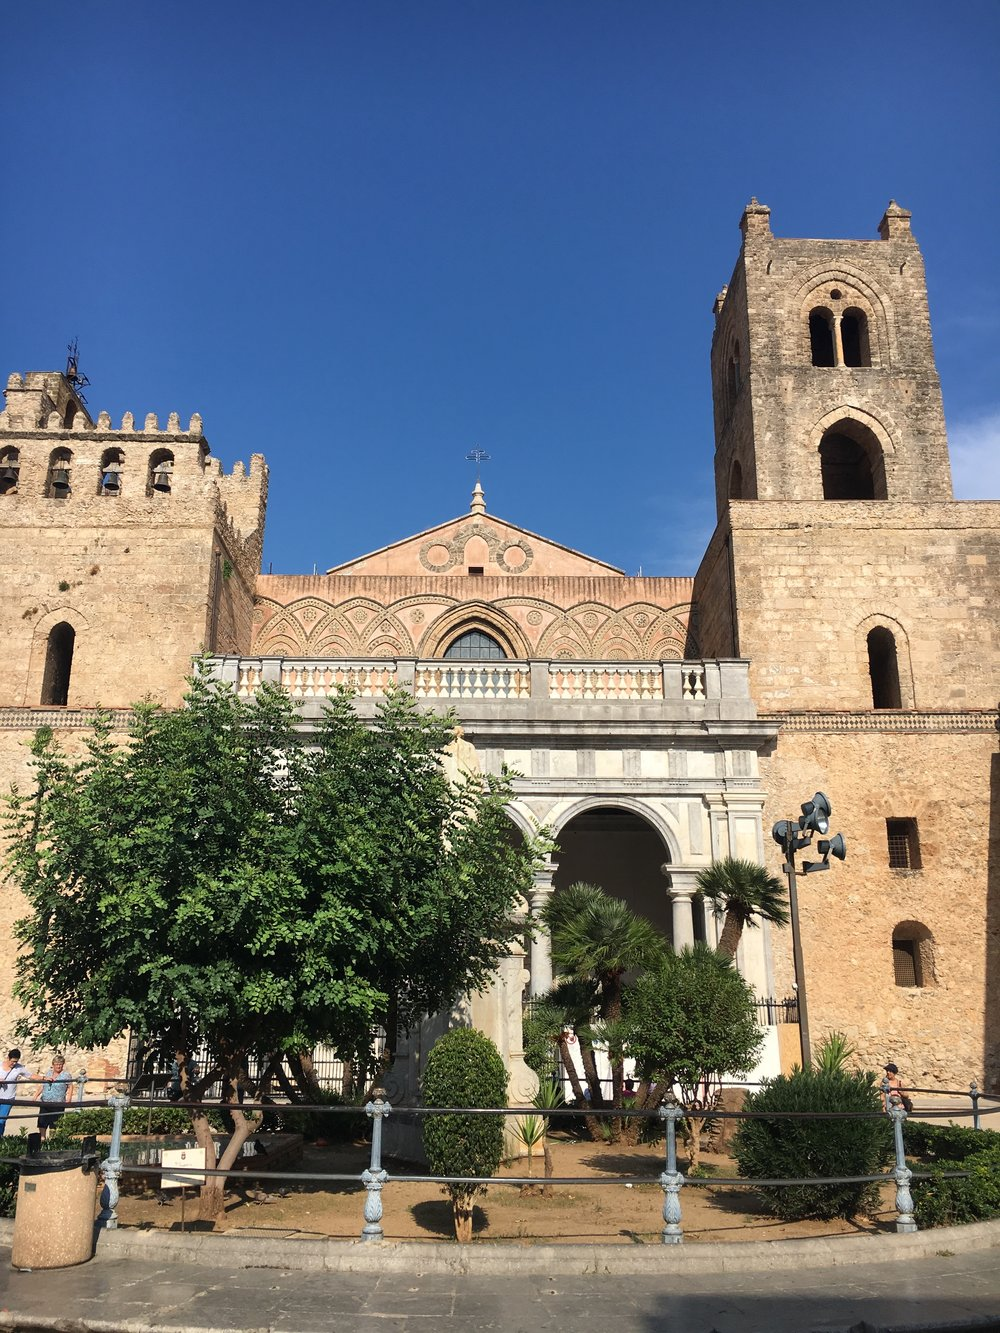 The exterior of the Monreale Cathedral, Sicily, September 2016.